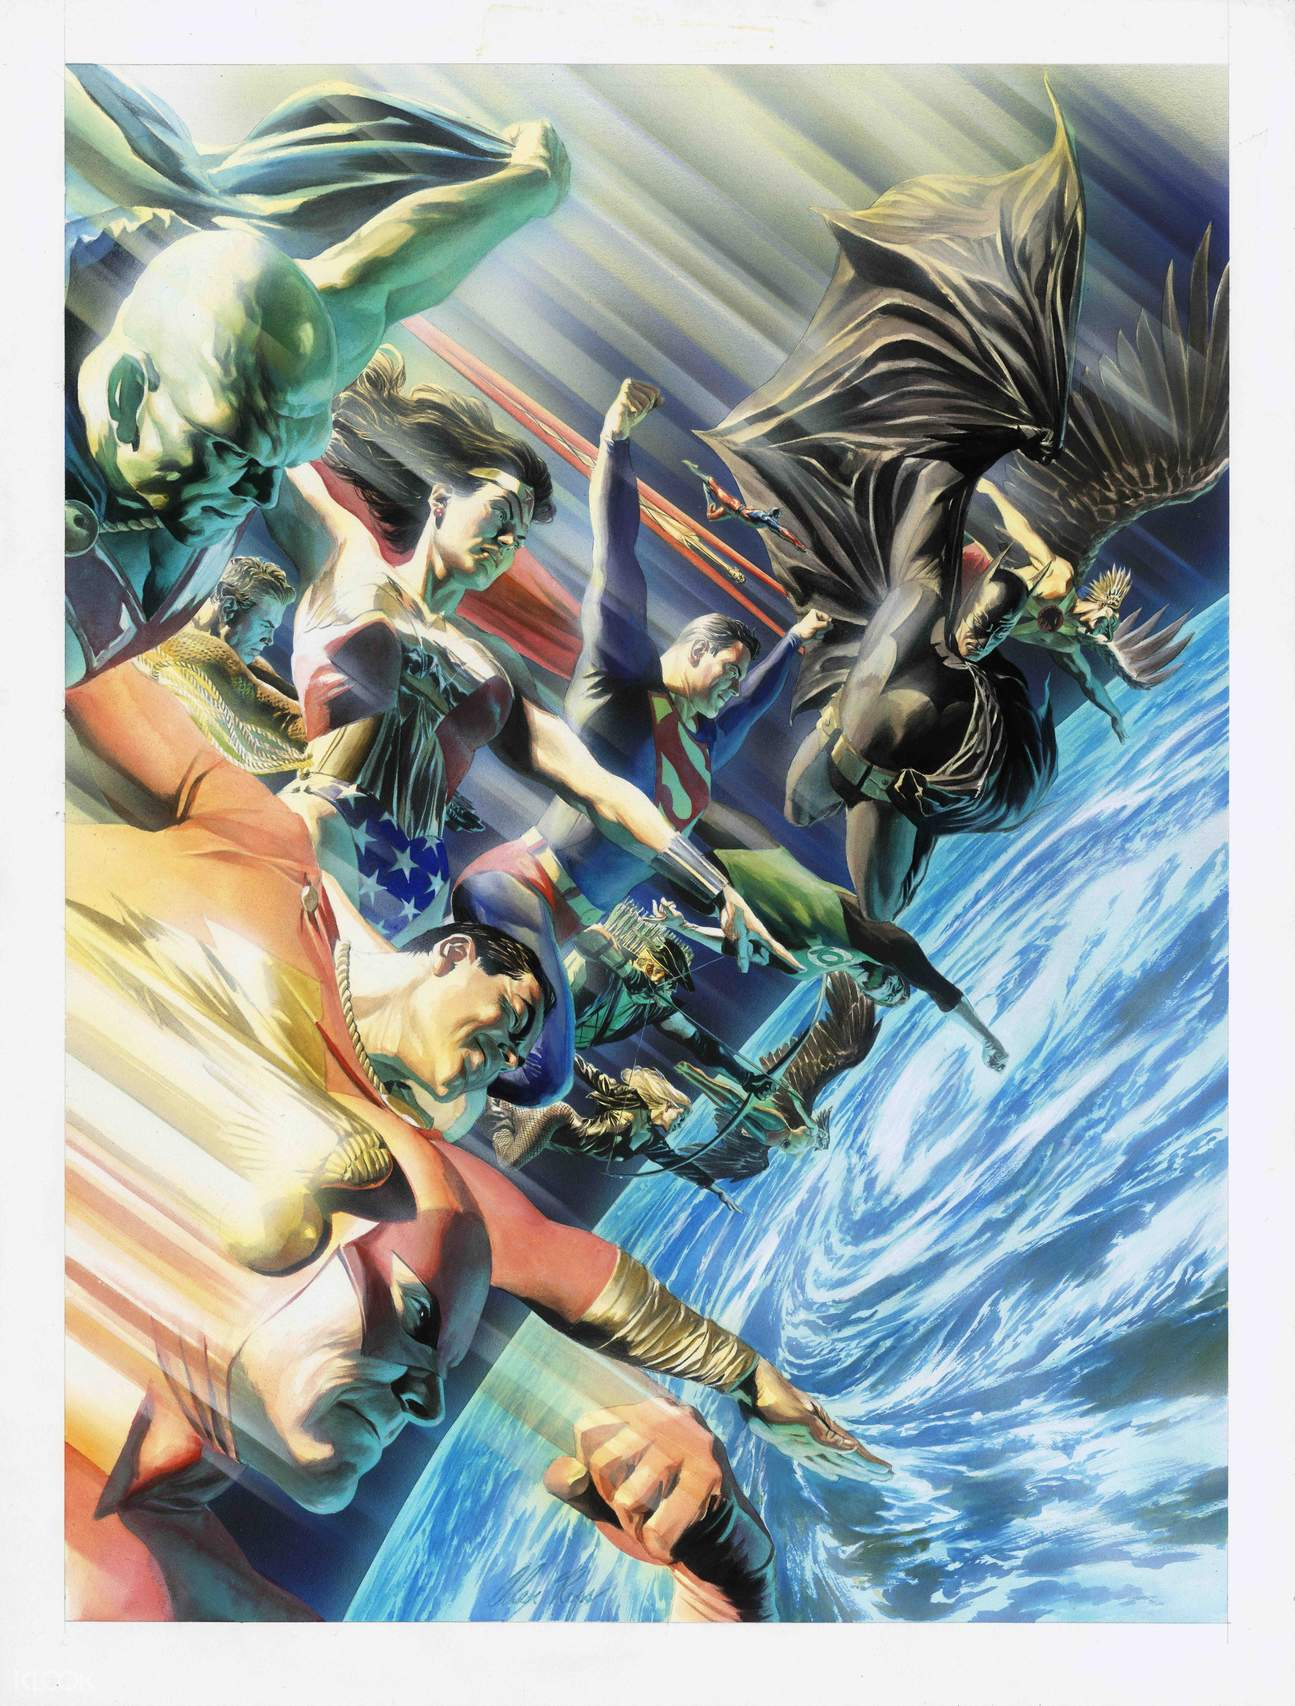 JUSTICE LEAGUE and all related characters and elements ™&©DC_(s20)